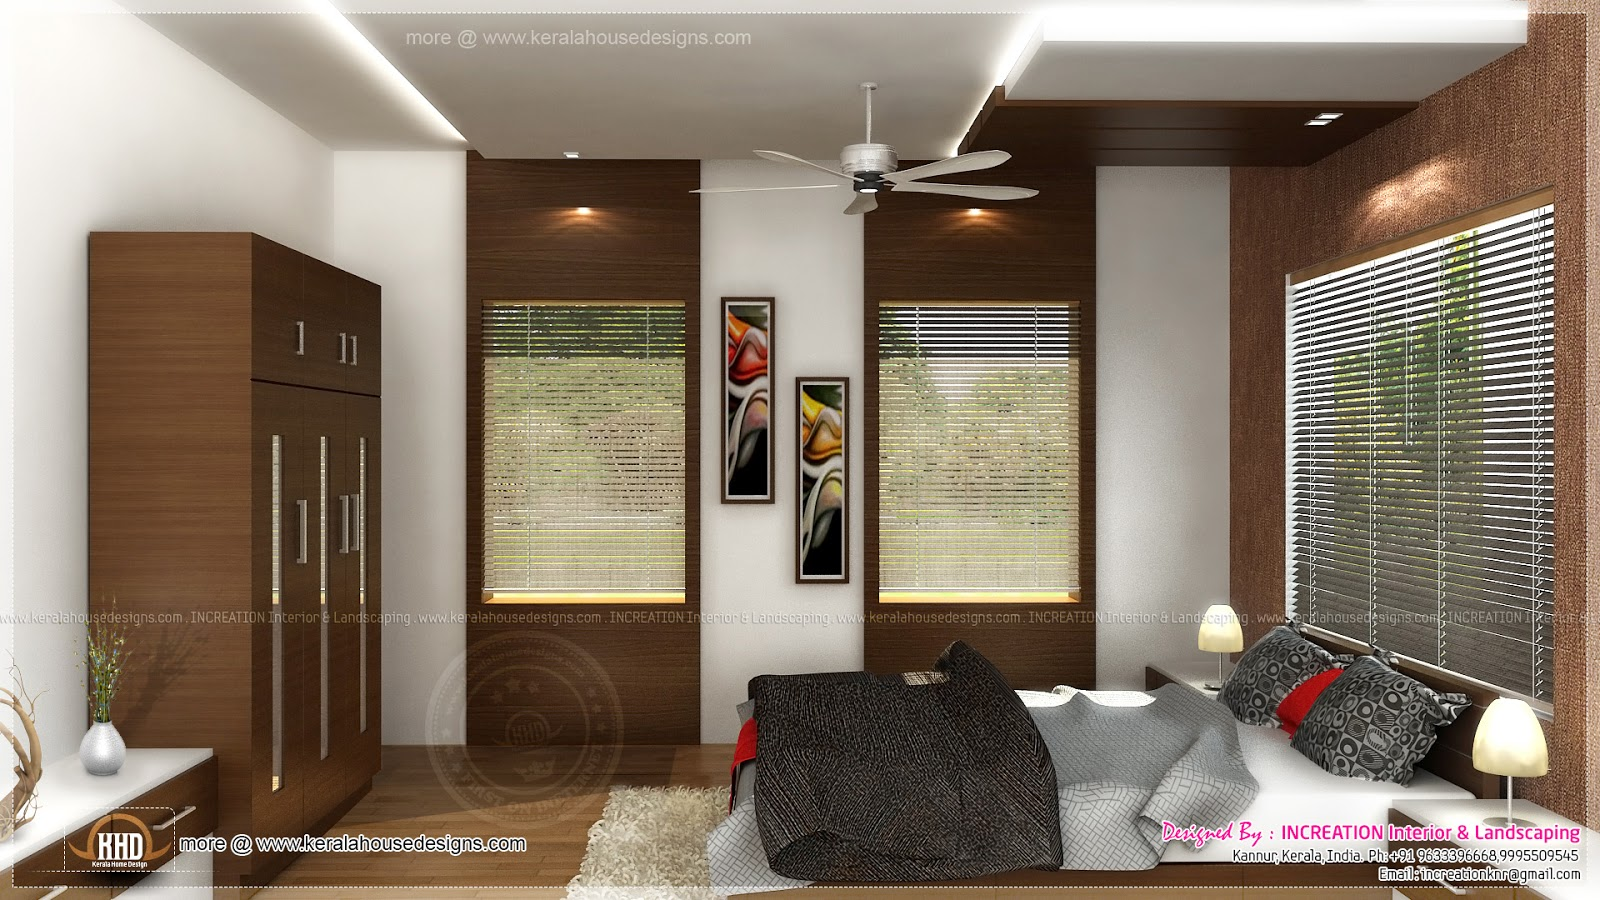 Interior designs from kannur kerala kerala home design for Home interior bedroom